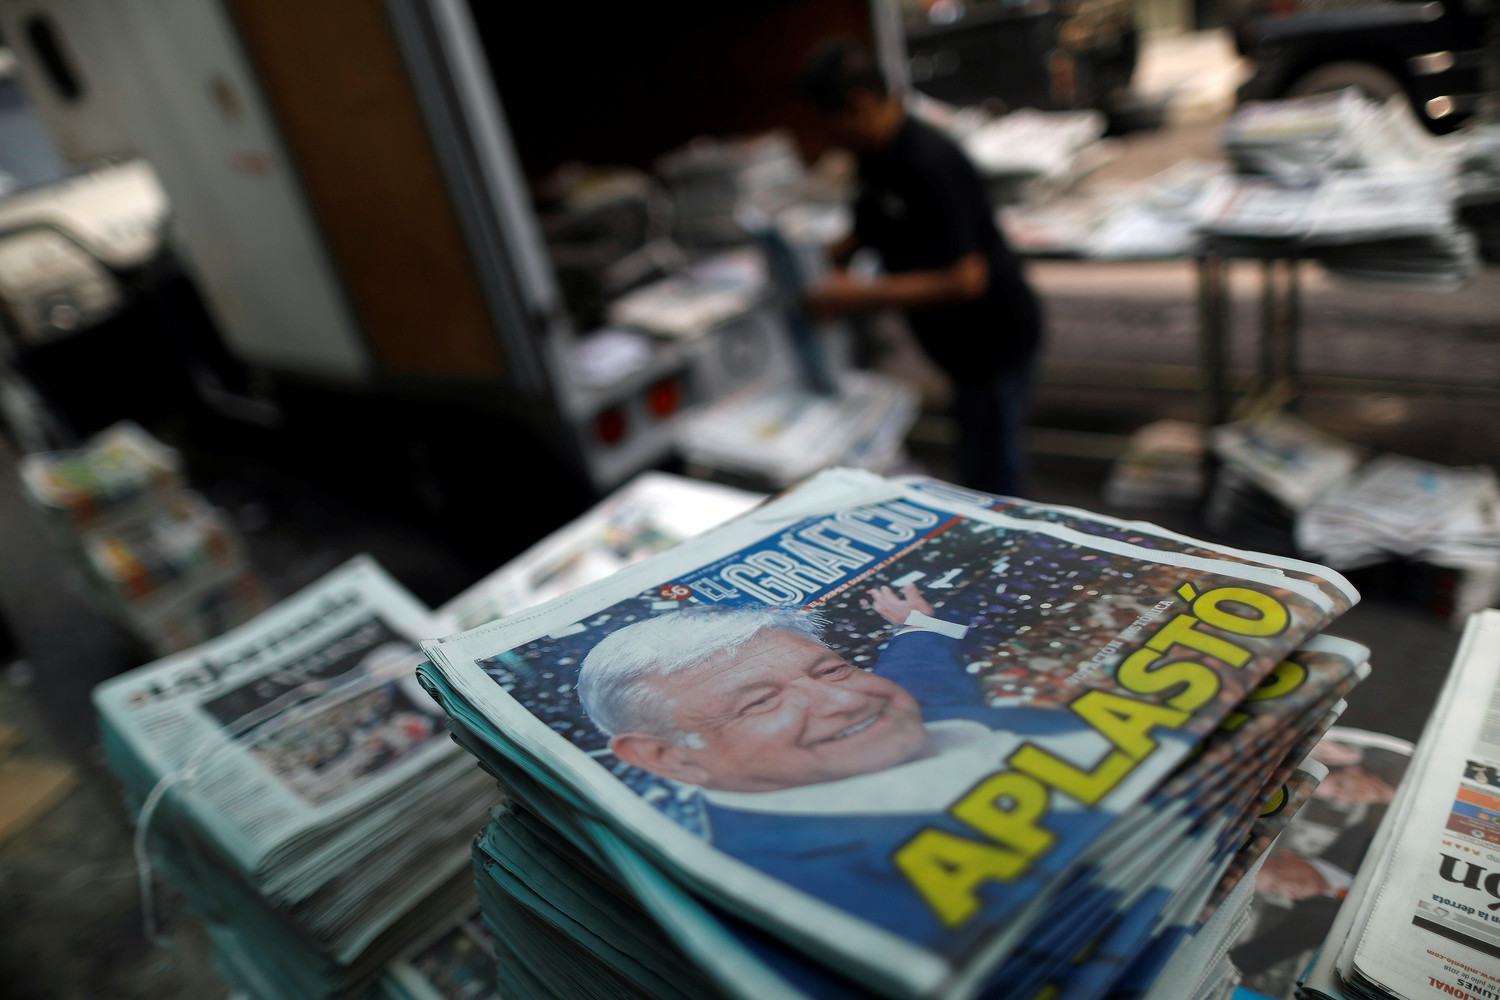 Newspapers are seen July 2 in Mexico City after the election of Andres Manuel Lopez Obrador as the new Mexican president.